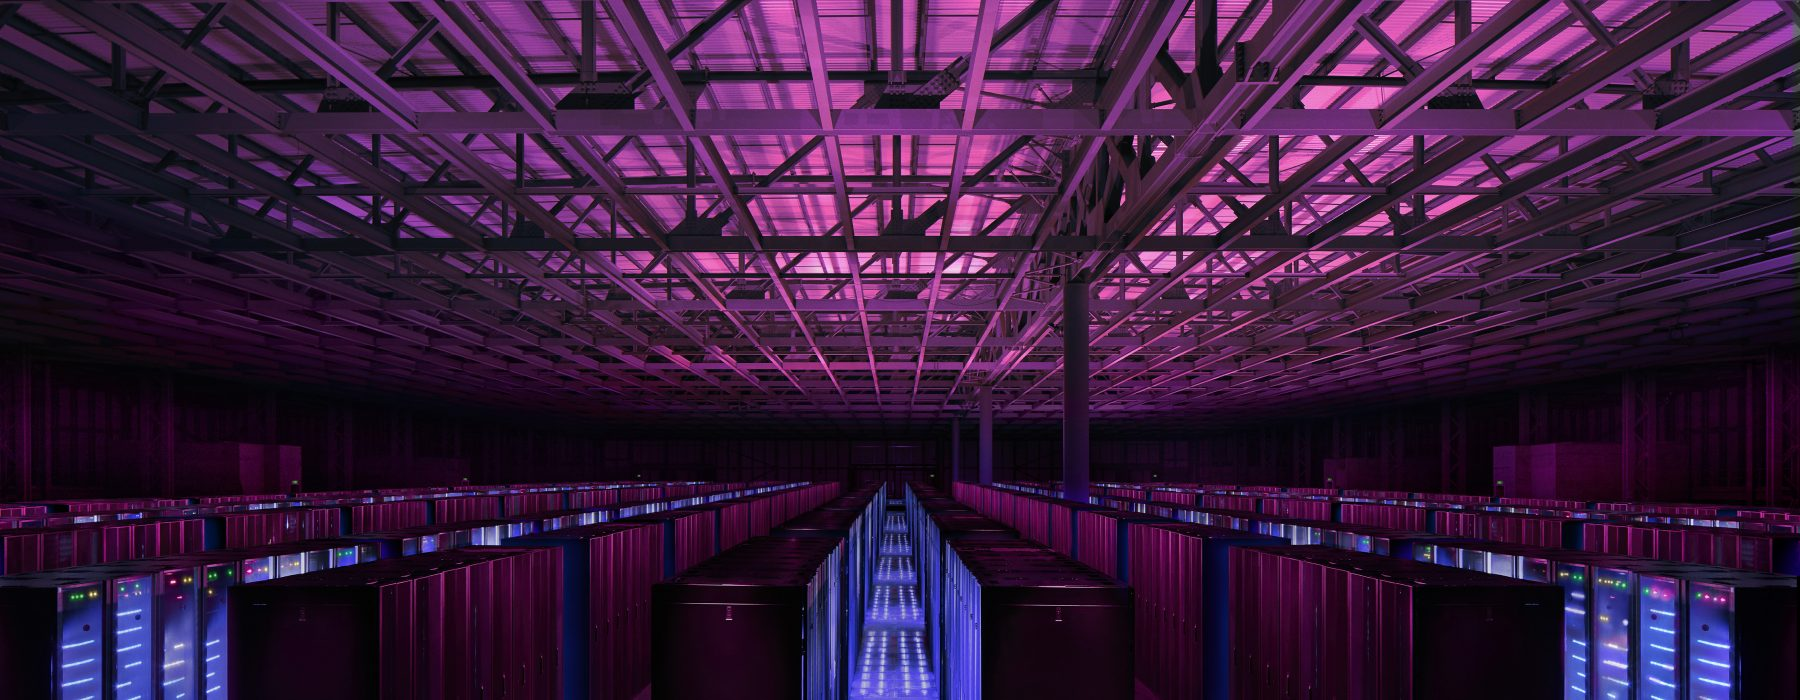 A purple-lit warehouse to represent the PSBA's public sector broadband aggregation.